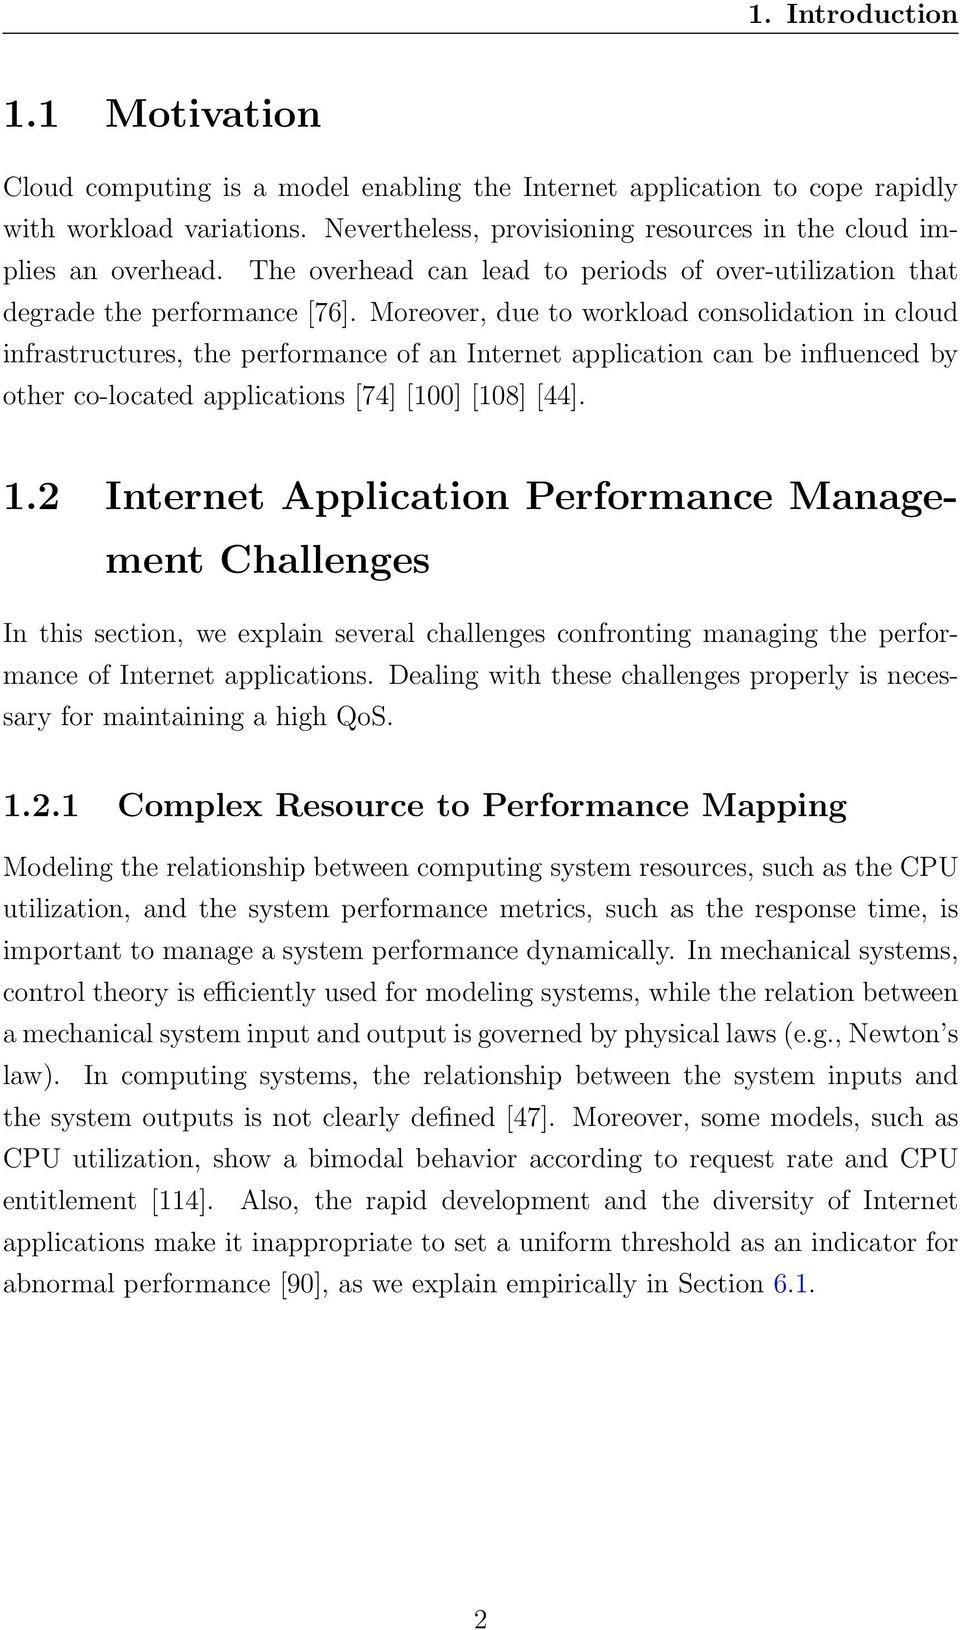 Moreover, due to workload consolidation in cloud infrastructures, the performance of an Internet application can be influenced by other co-located applications [74] [100] [108] [44]. 1.